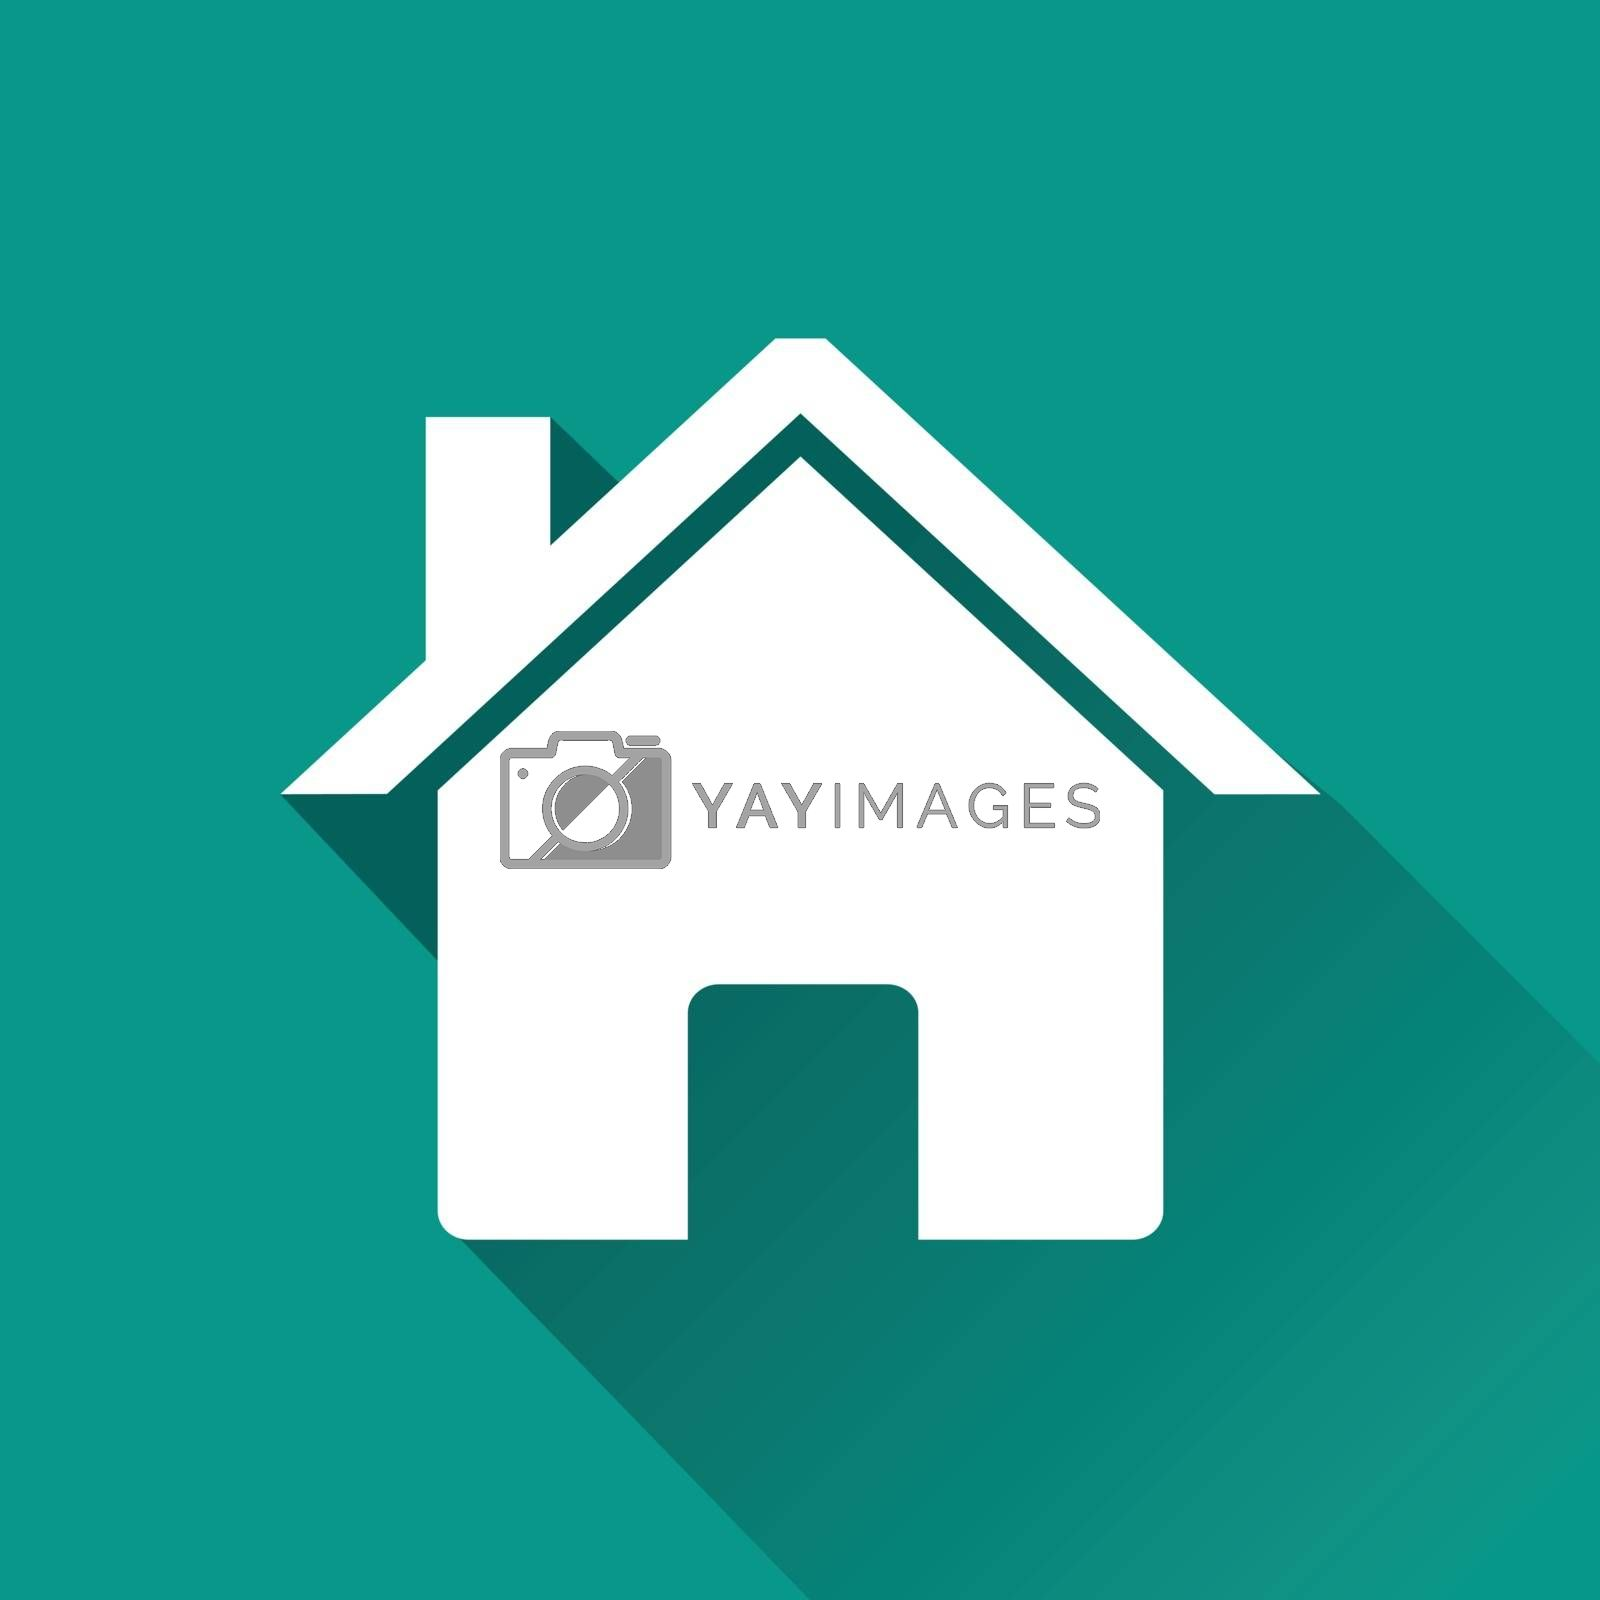 Royalty free image of home flat design icon by nickylarson974